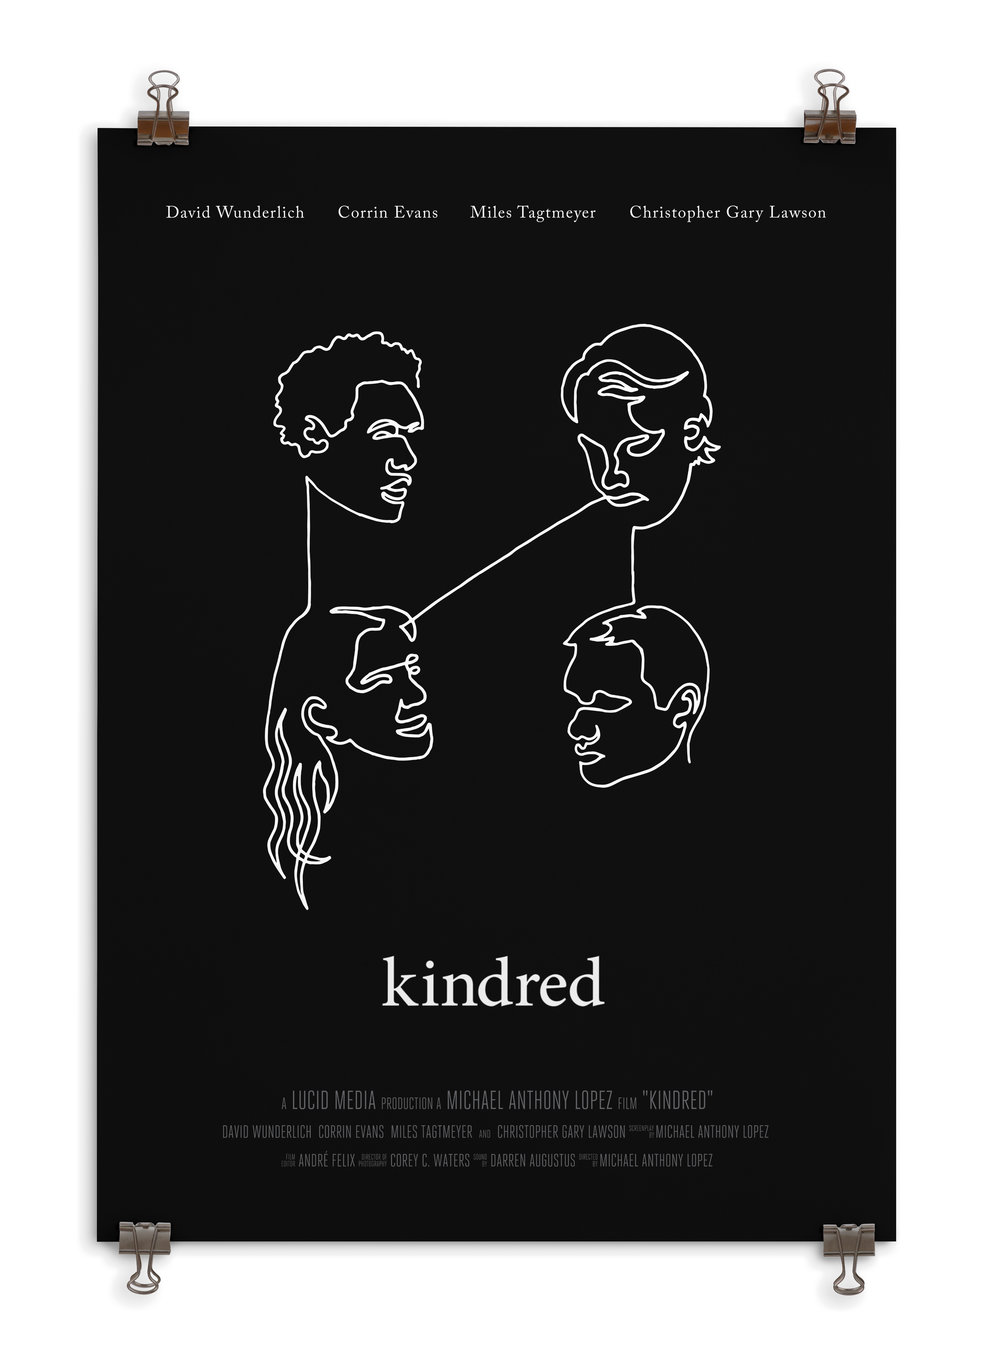 Kindred is an emotional short about a gay man meeting up with his ex-girlfriend and her boyfriend over dinner. This film was all about connections, so I wanted to show how they're all connected through simple, single connected line.